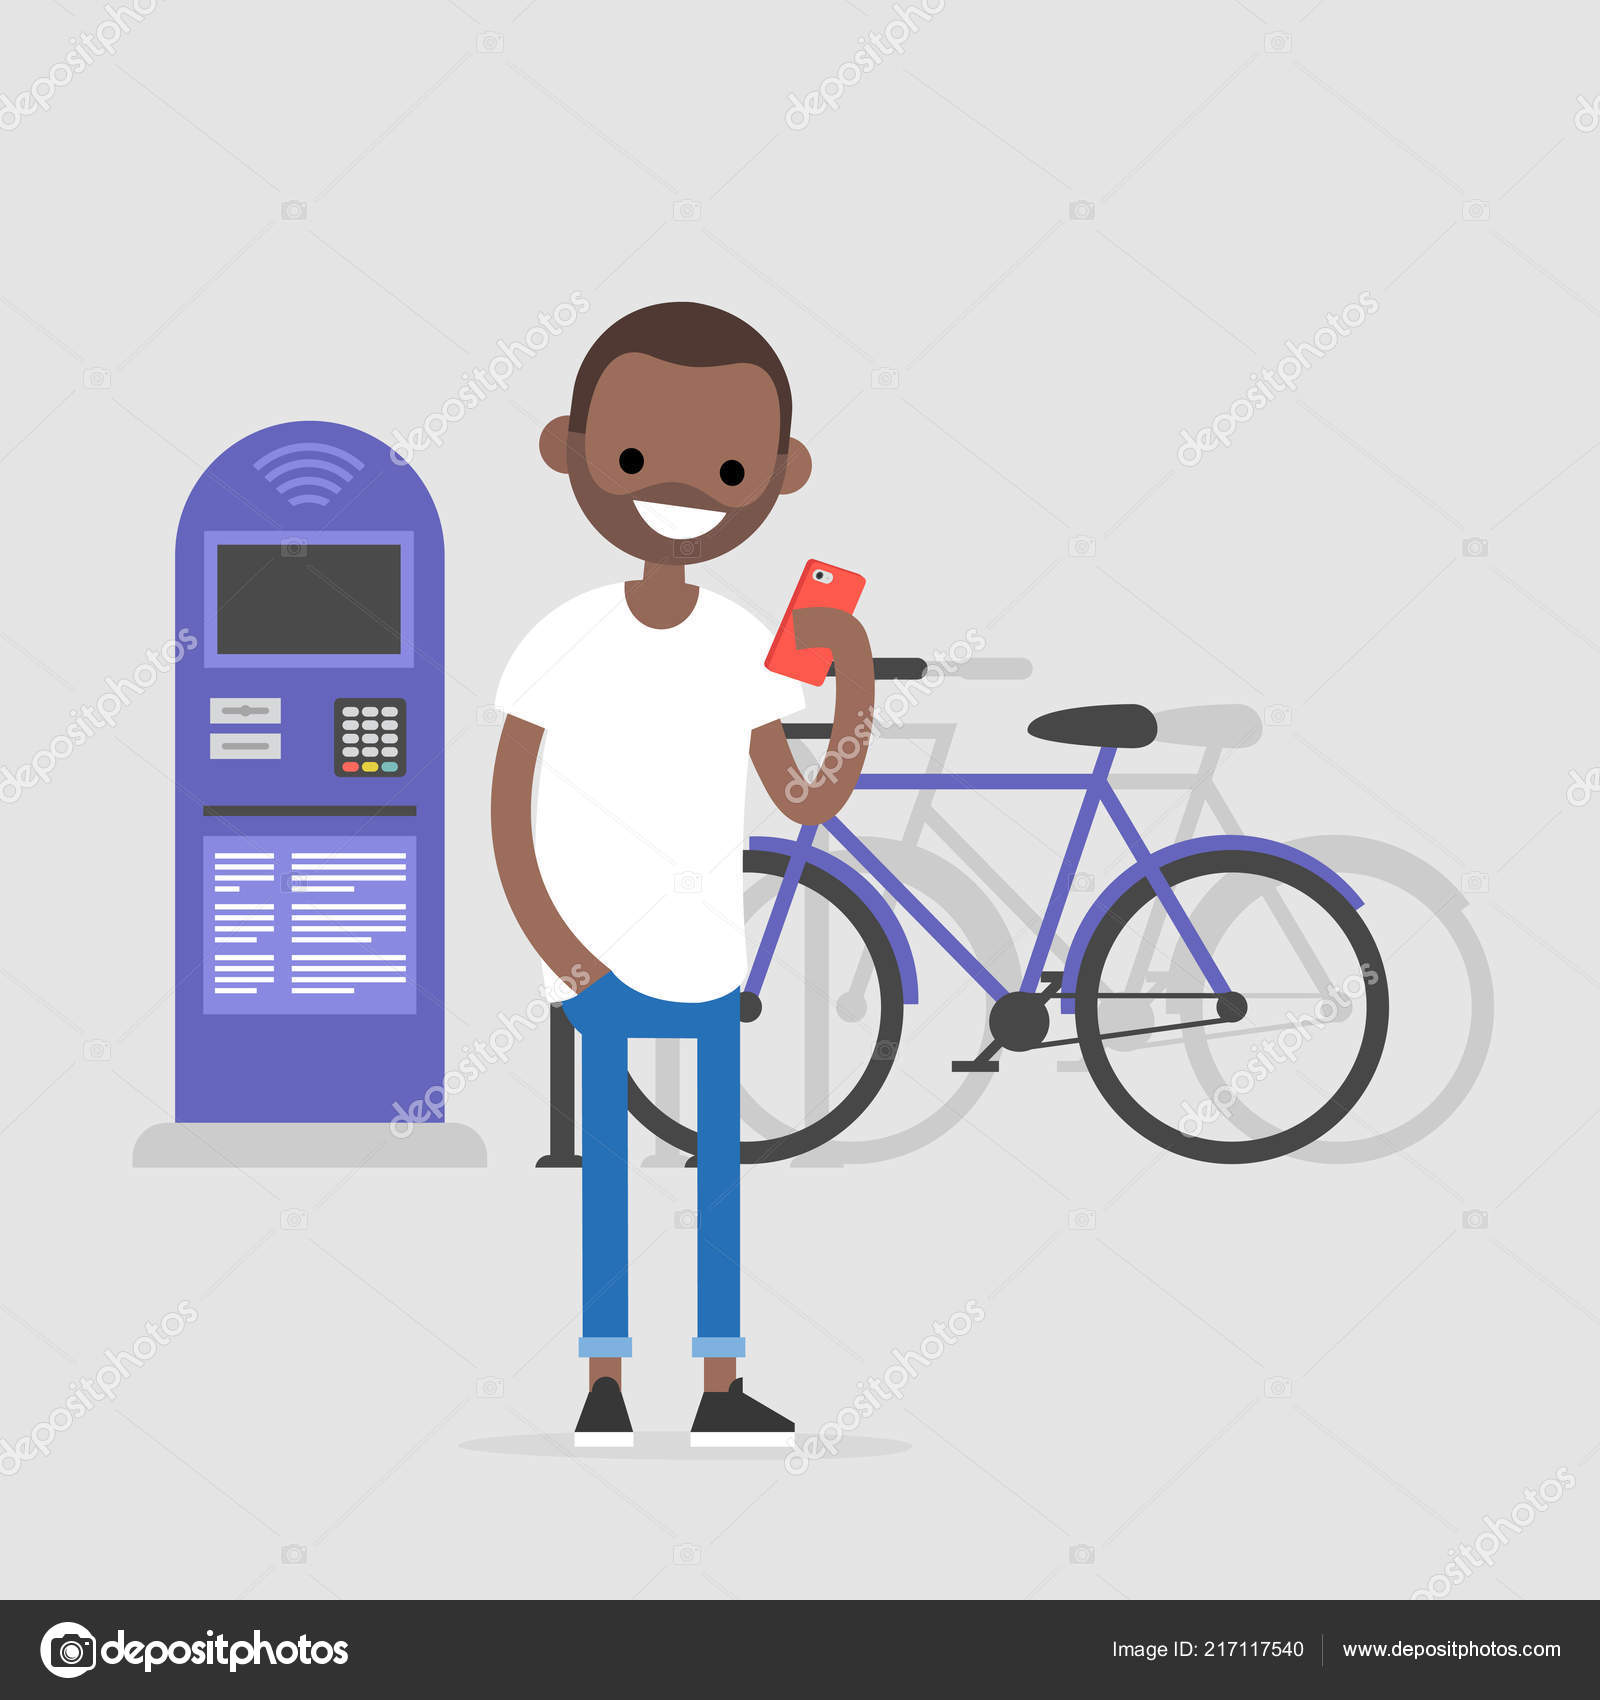 young character using a mobile bike rental application urban transport system flat editable vector illustration clip art active lifestyle vector by